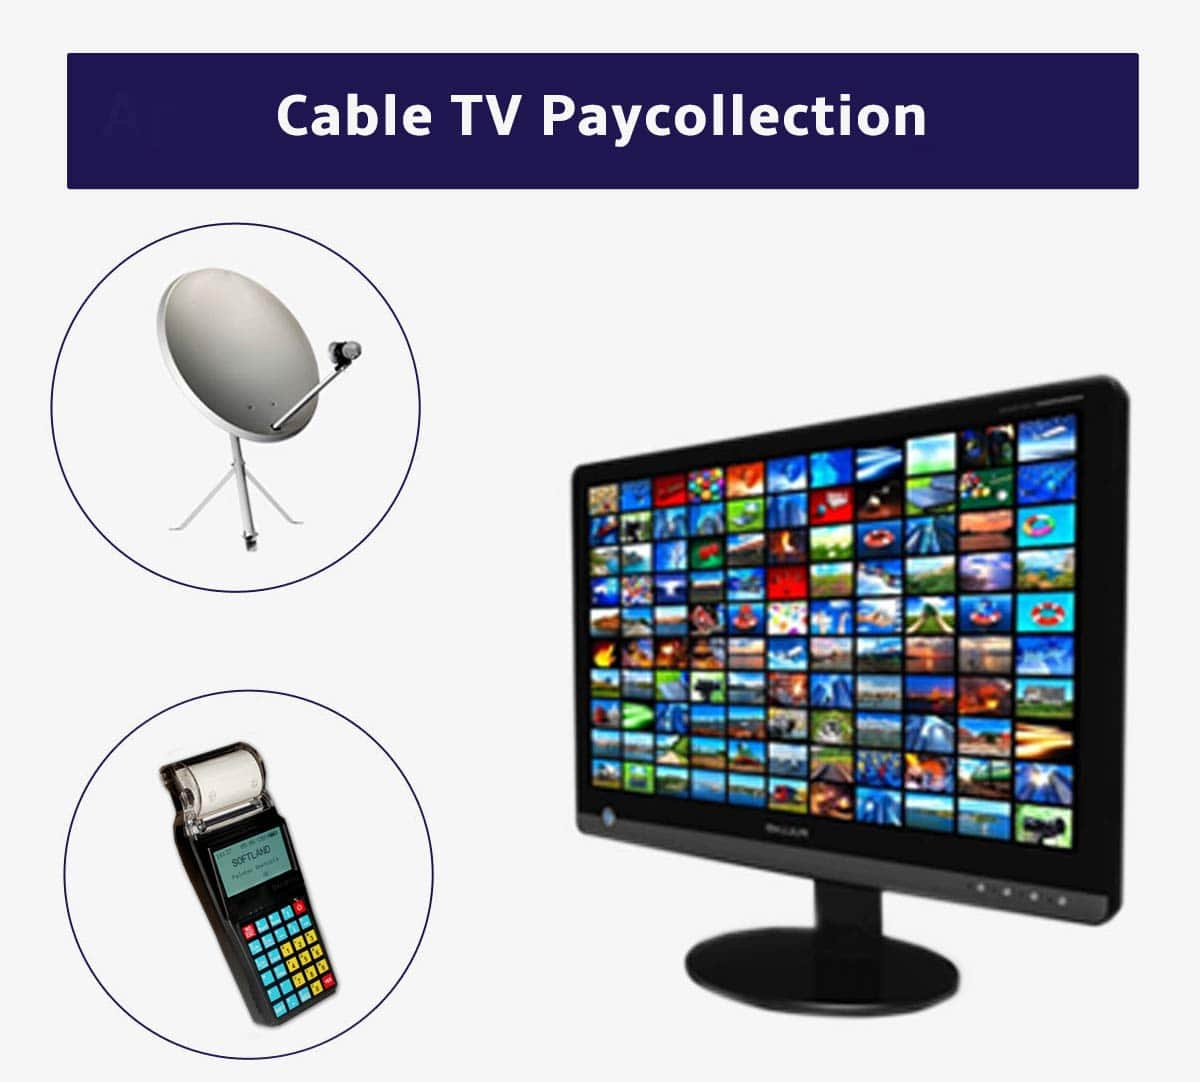 cabletv-content